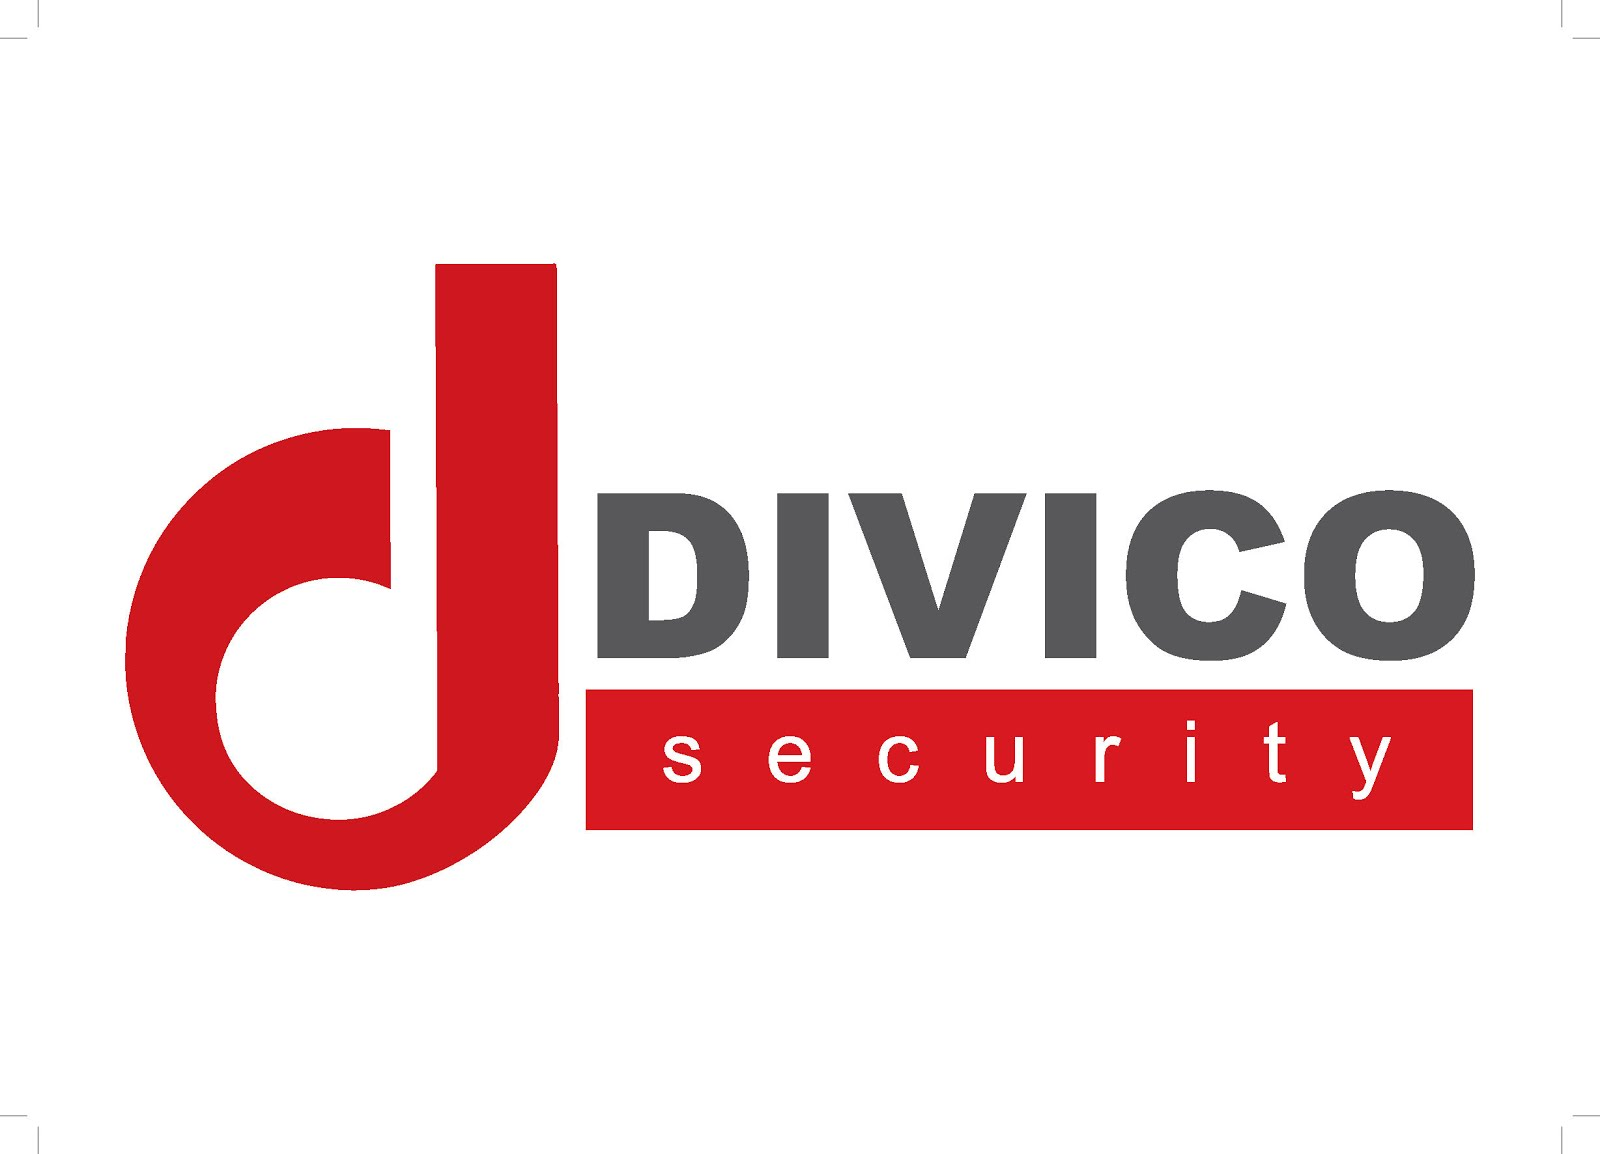 DIVICO SECURITY